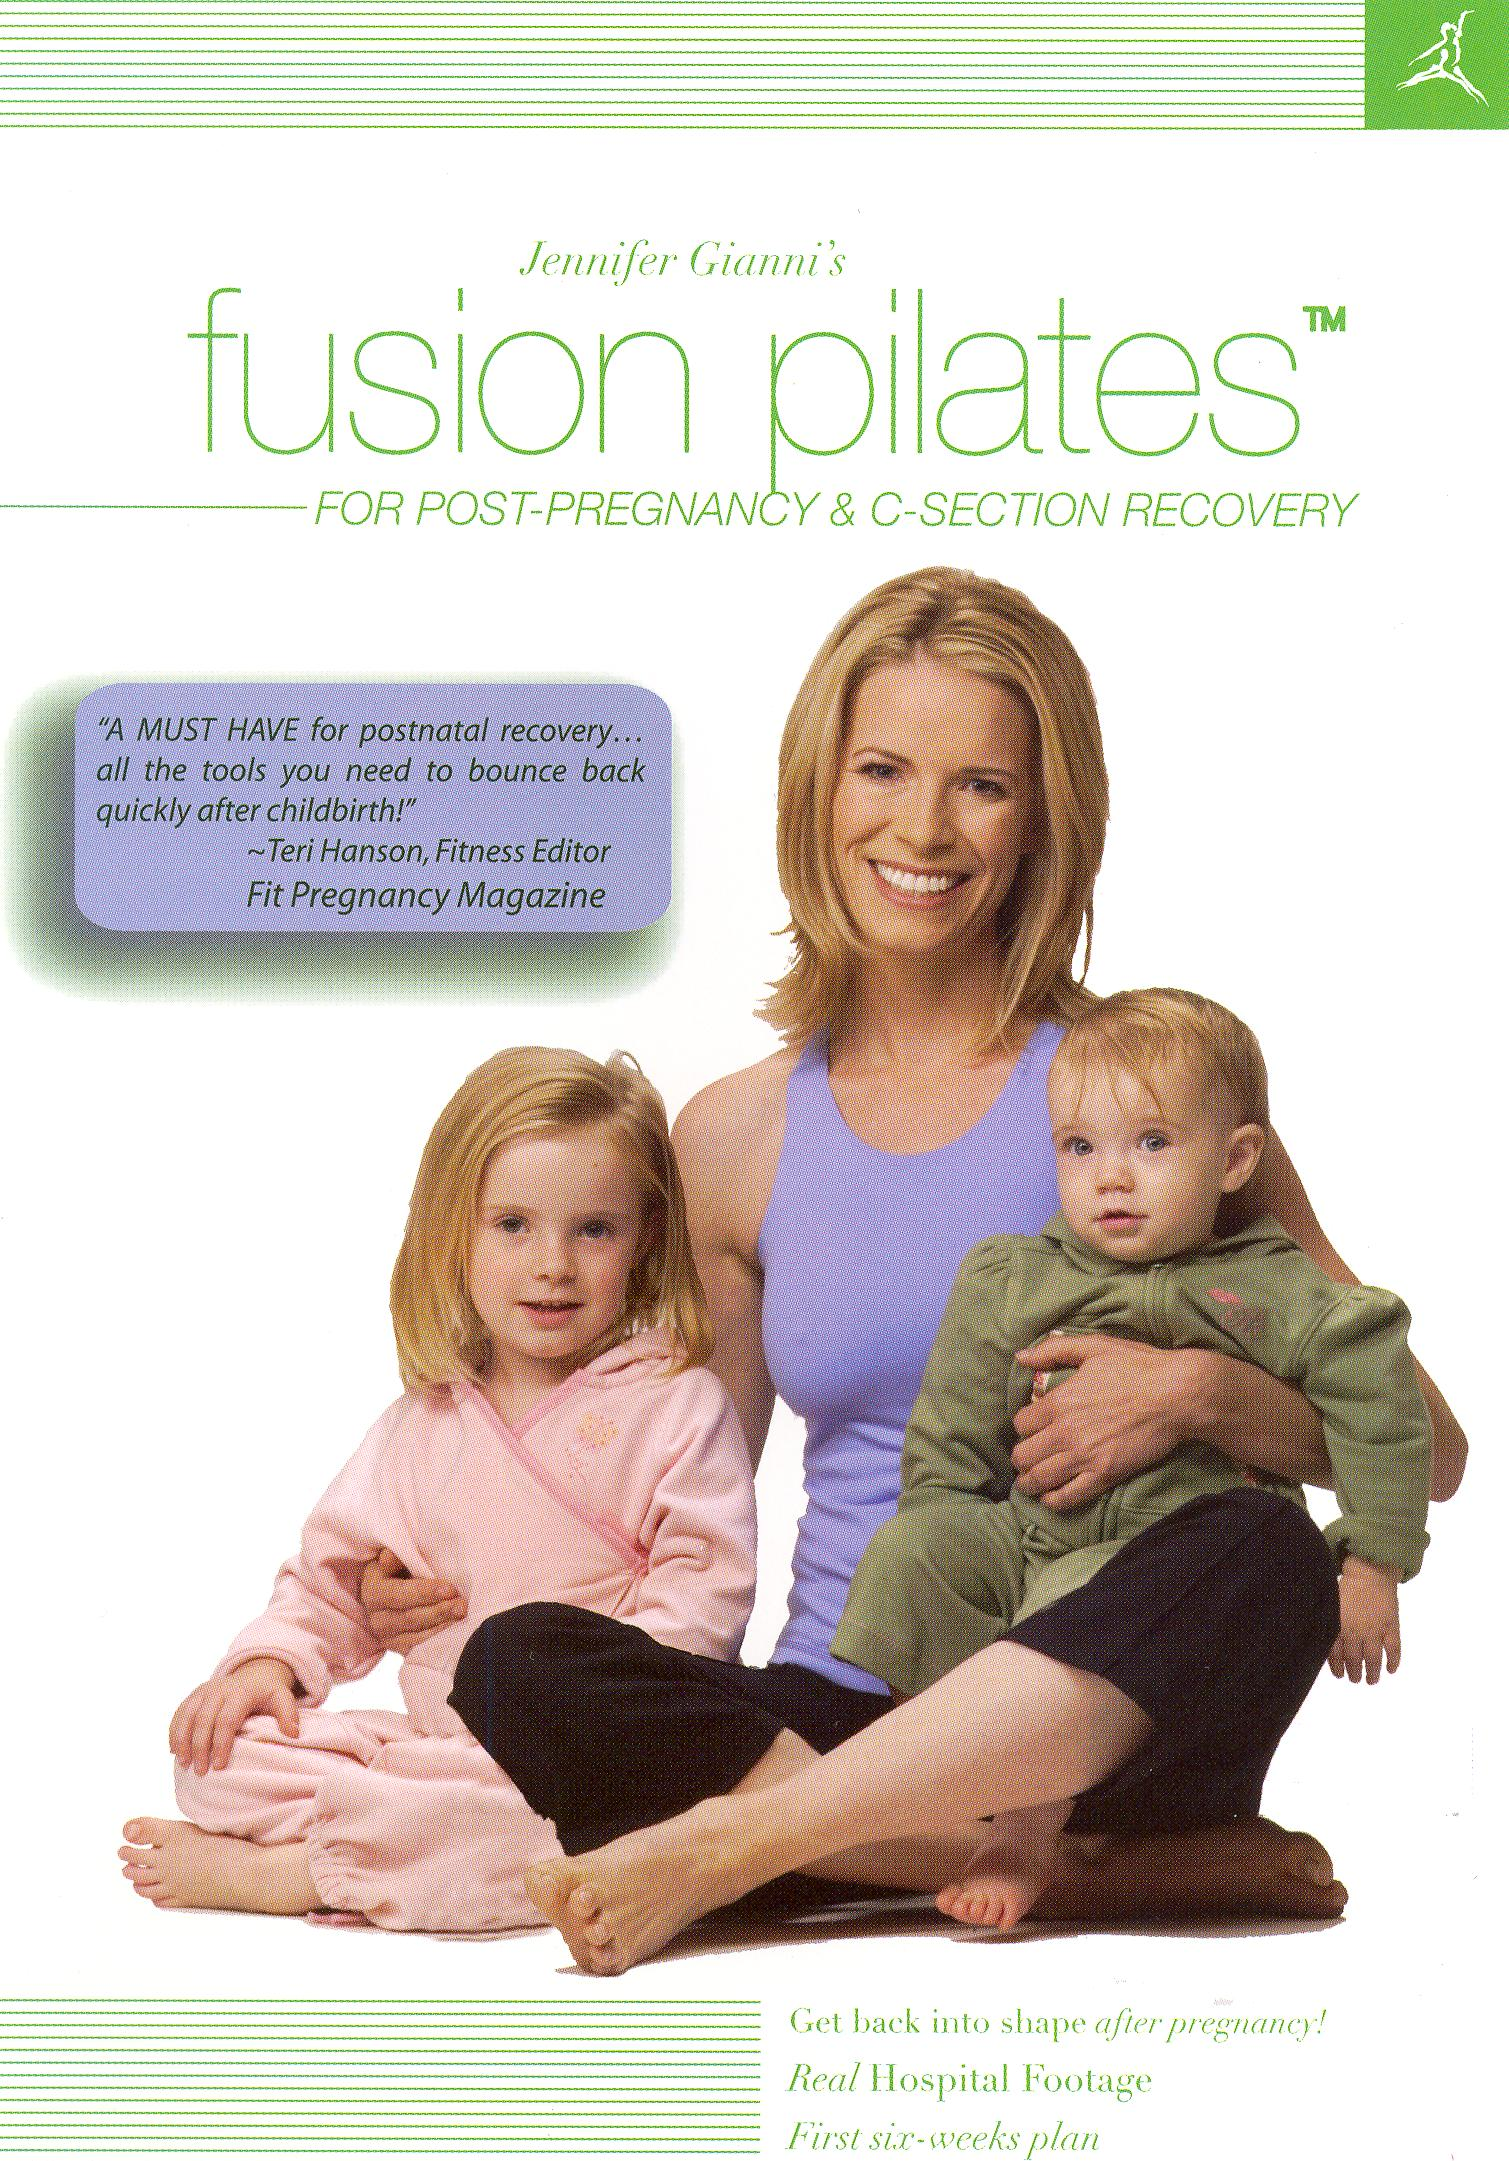 Jennifer Gianni's Fusion Pilates for Post-Pregnancy & C-Section Recovery